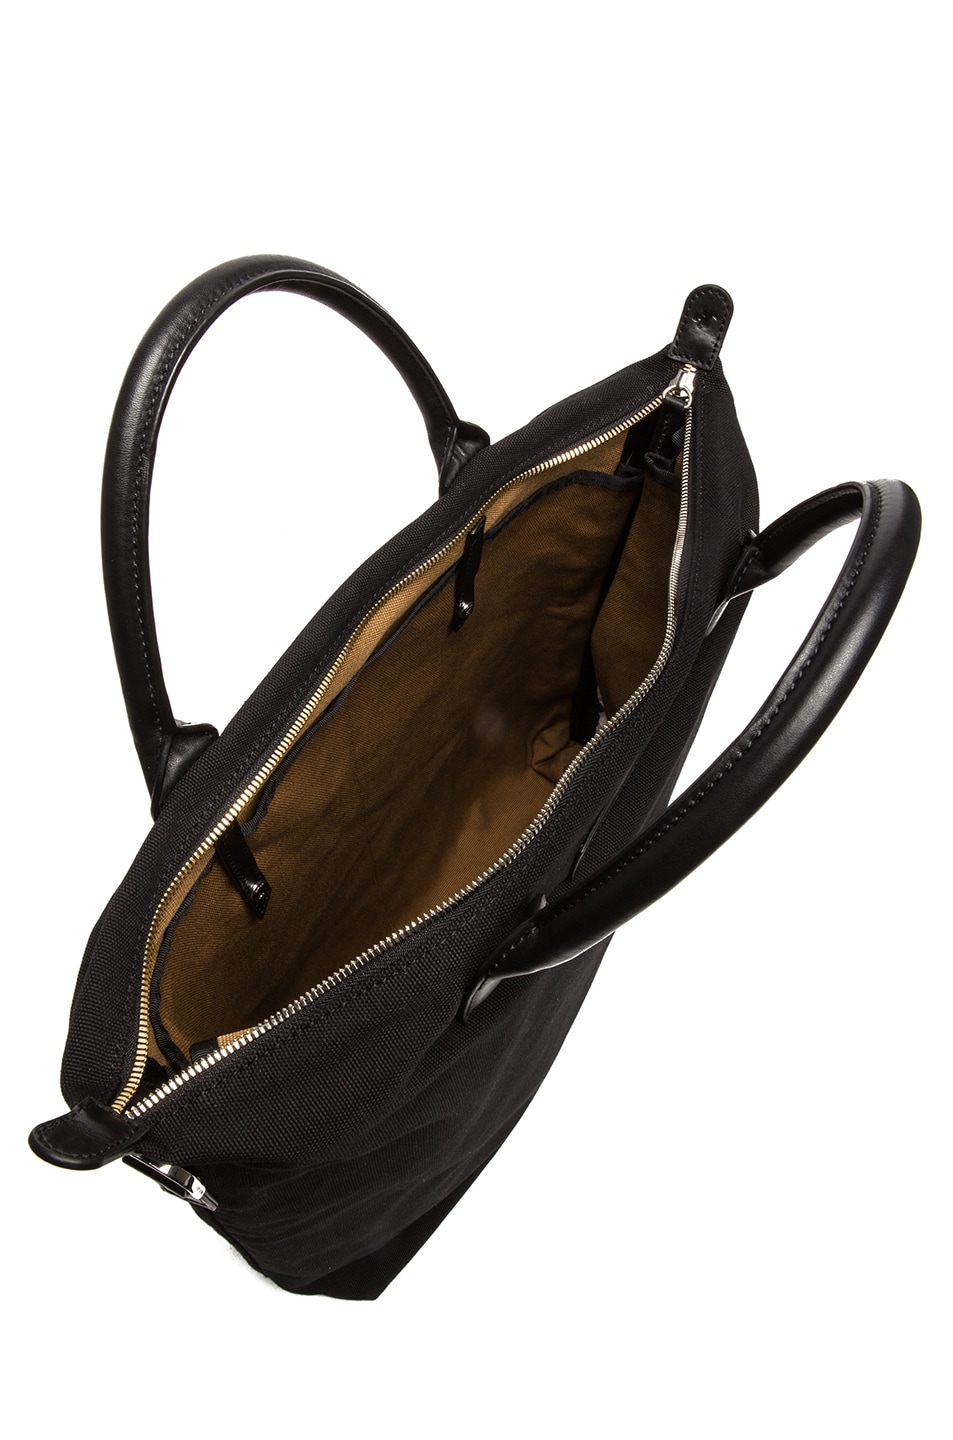 Image 4 of Want Les Essentiels De La Vie O'Hare Cotton Shopper Tote in Black